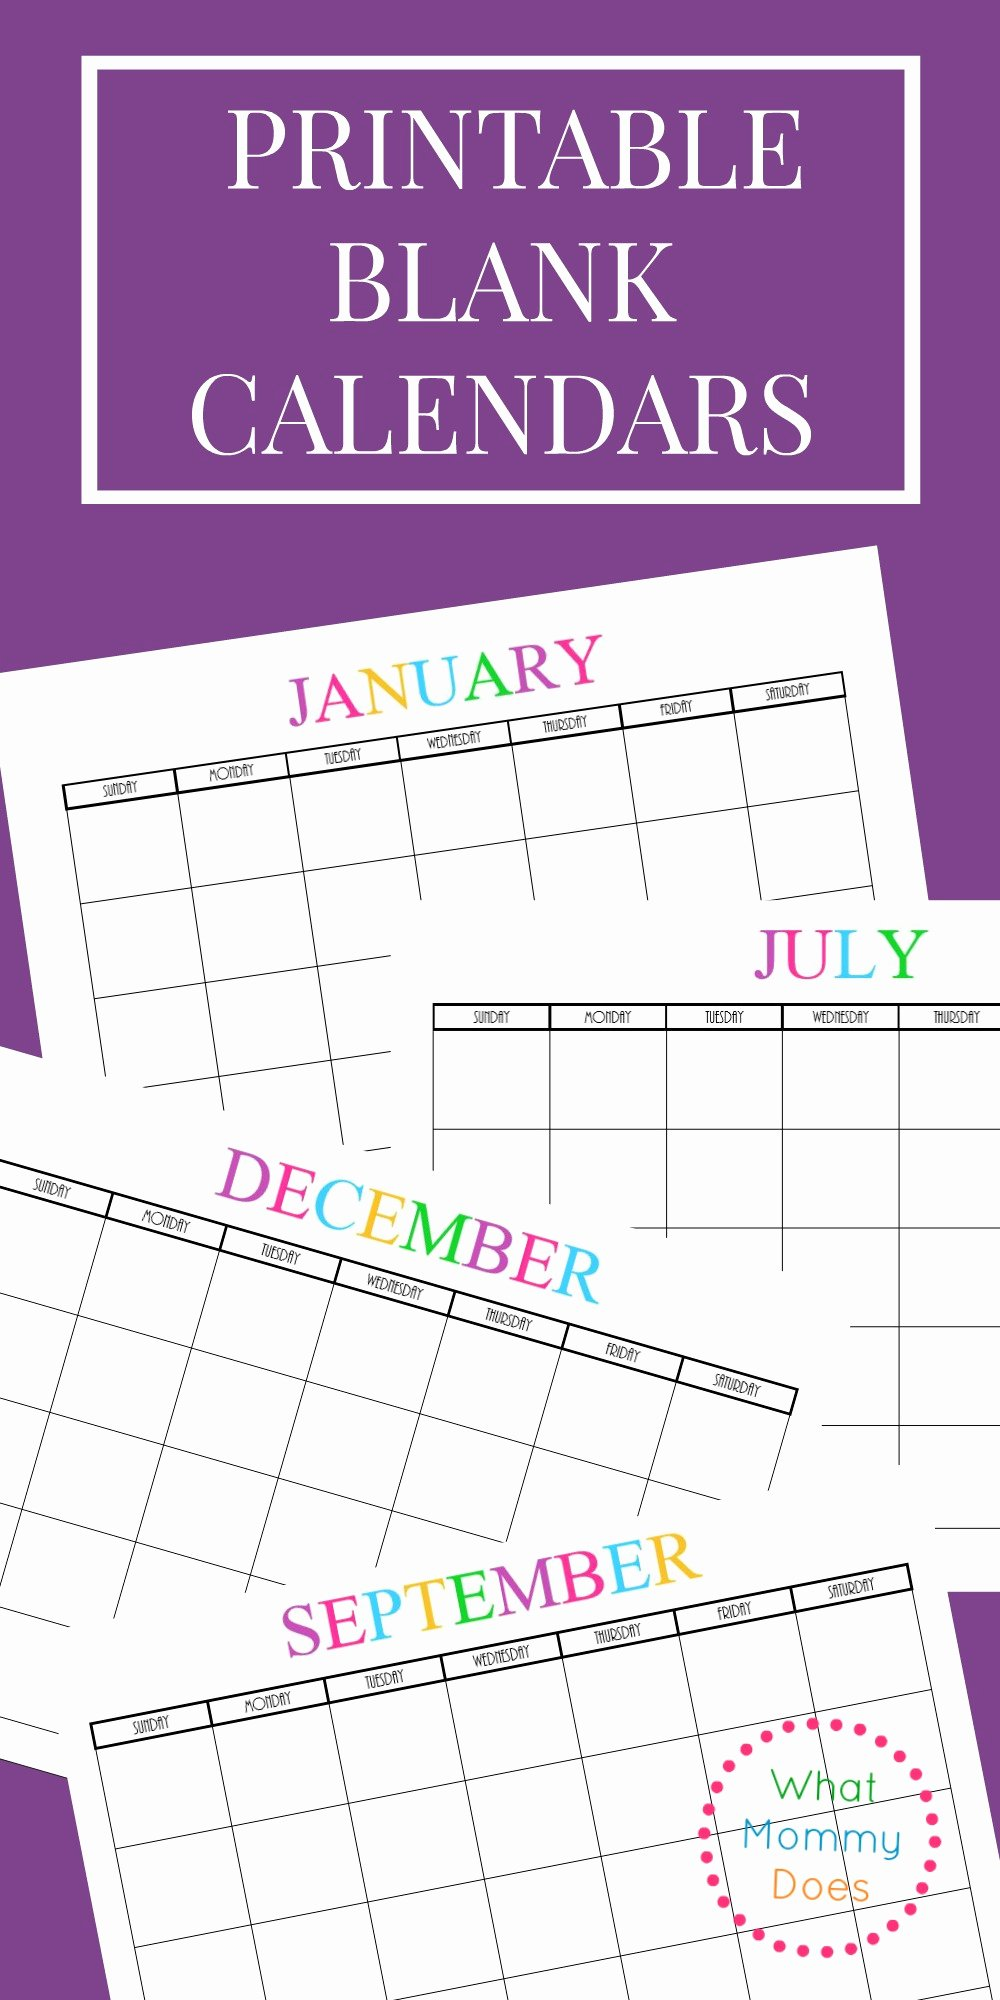 Printable Pocket Monthly Calendar New Free Printable Blank Monthly Calendars 2017 2018 2019